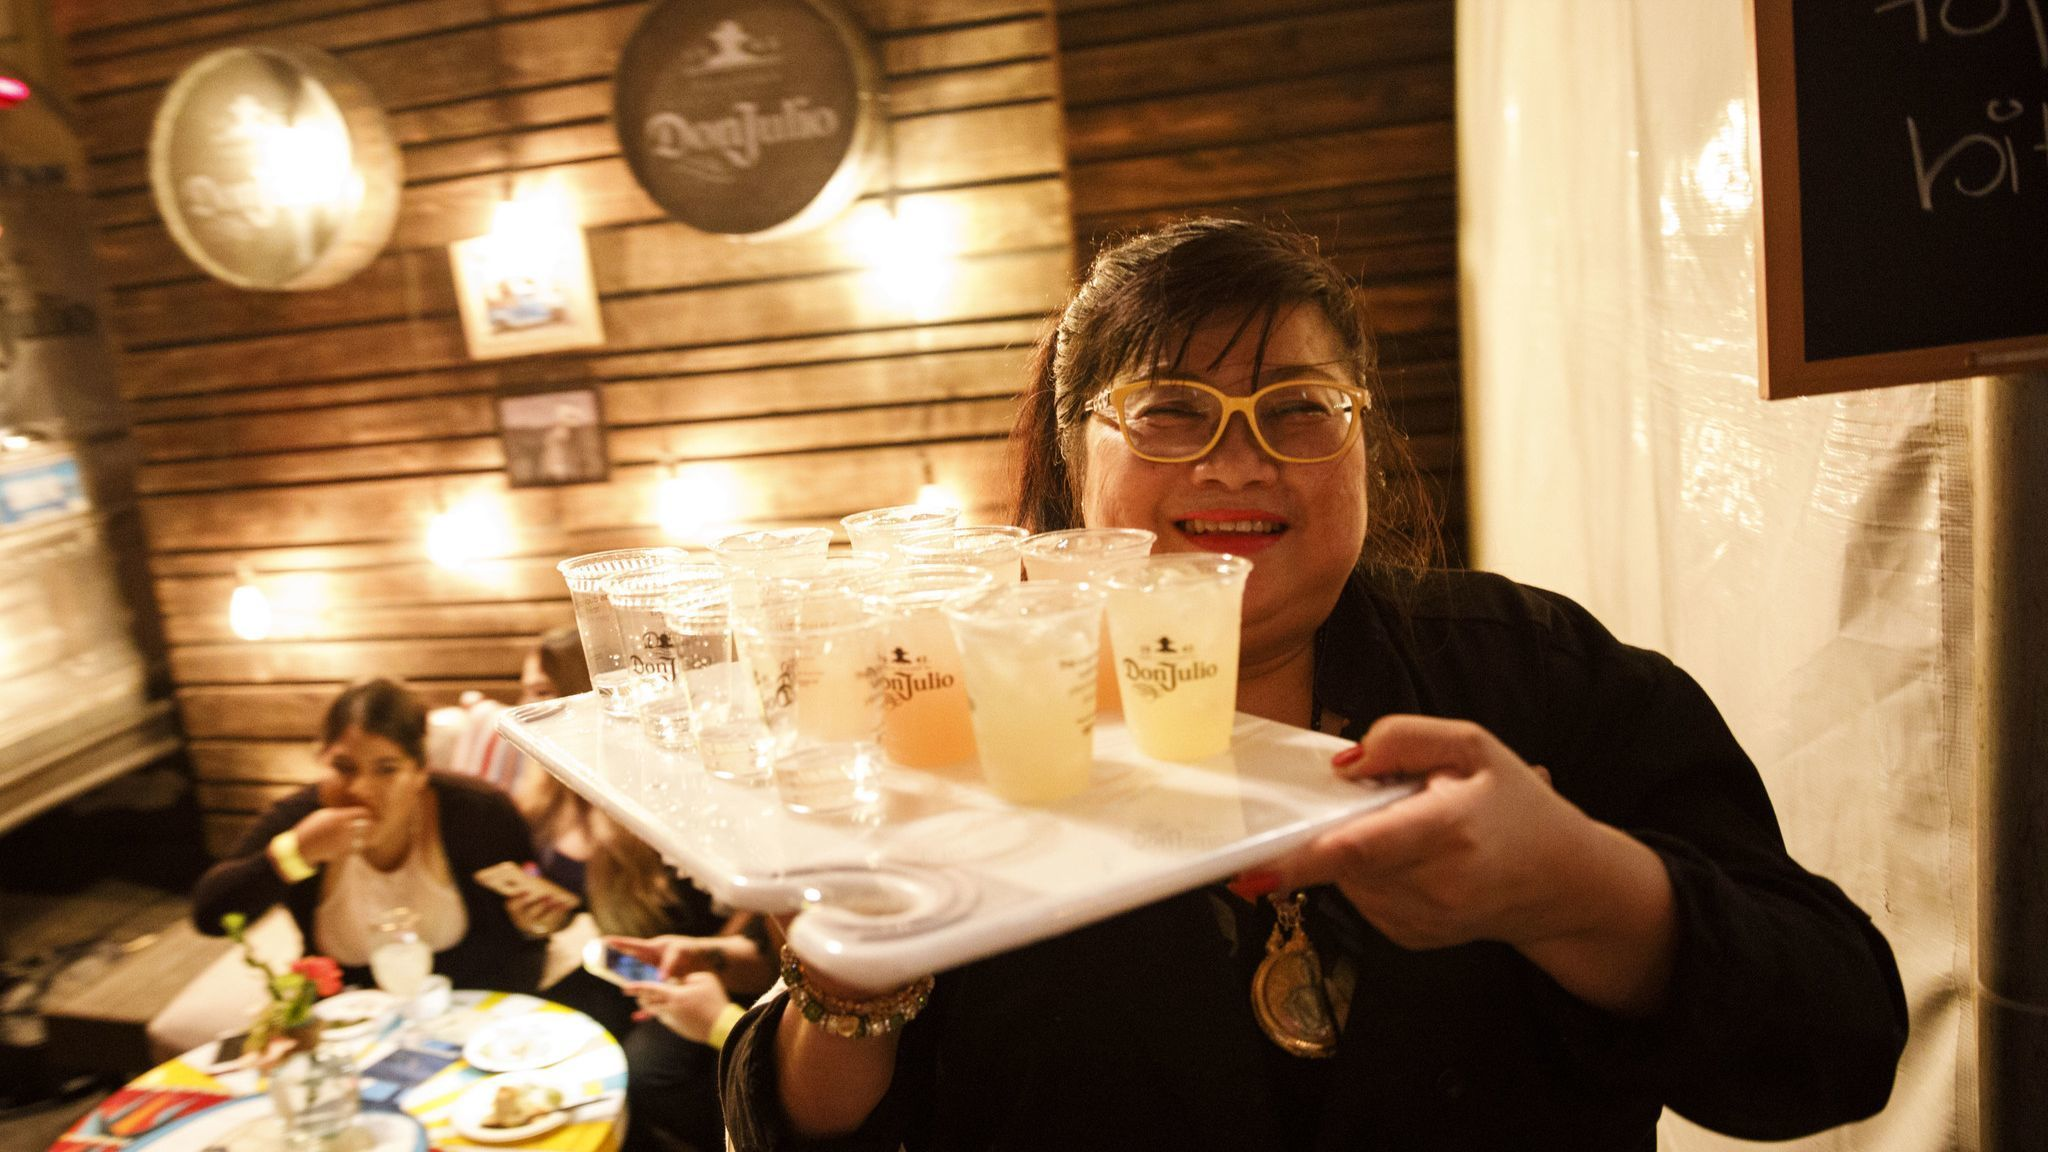 Jazz Singsanong of Jitlada carries away some beverages during The Taste on the Paramount Studios bac